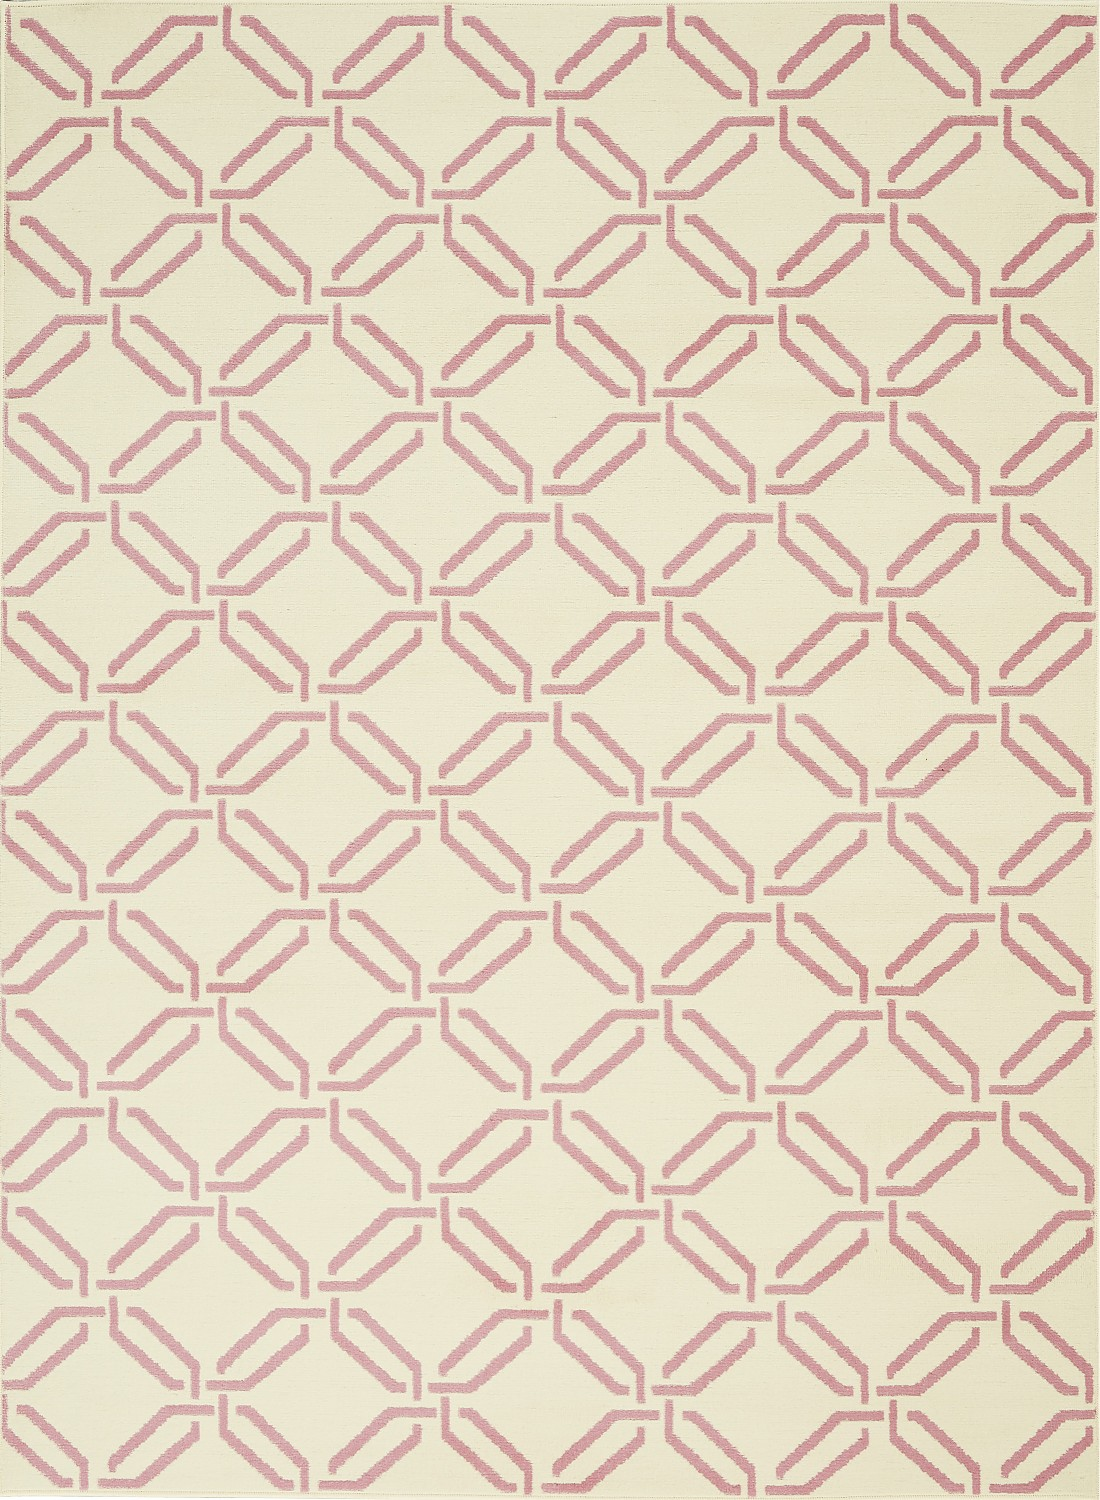 Jubilant JUB17 Ivory/Pink Area Rug Eclectic Retro Trellis By